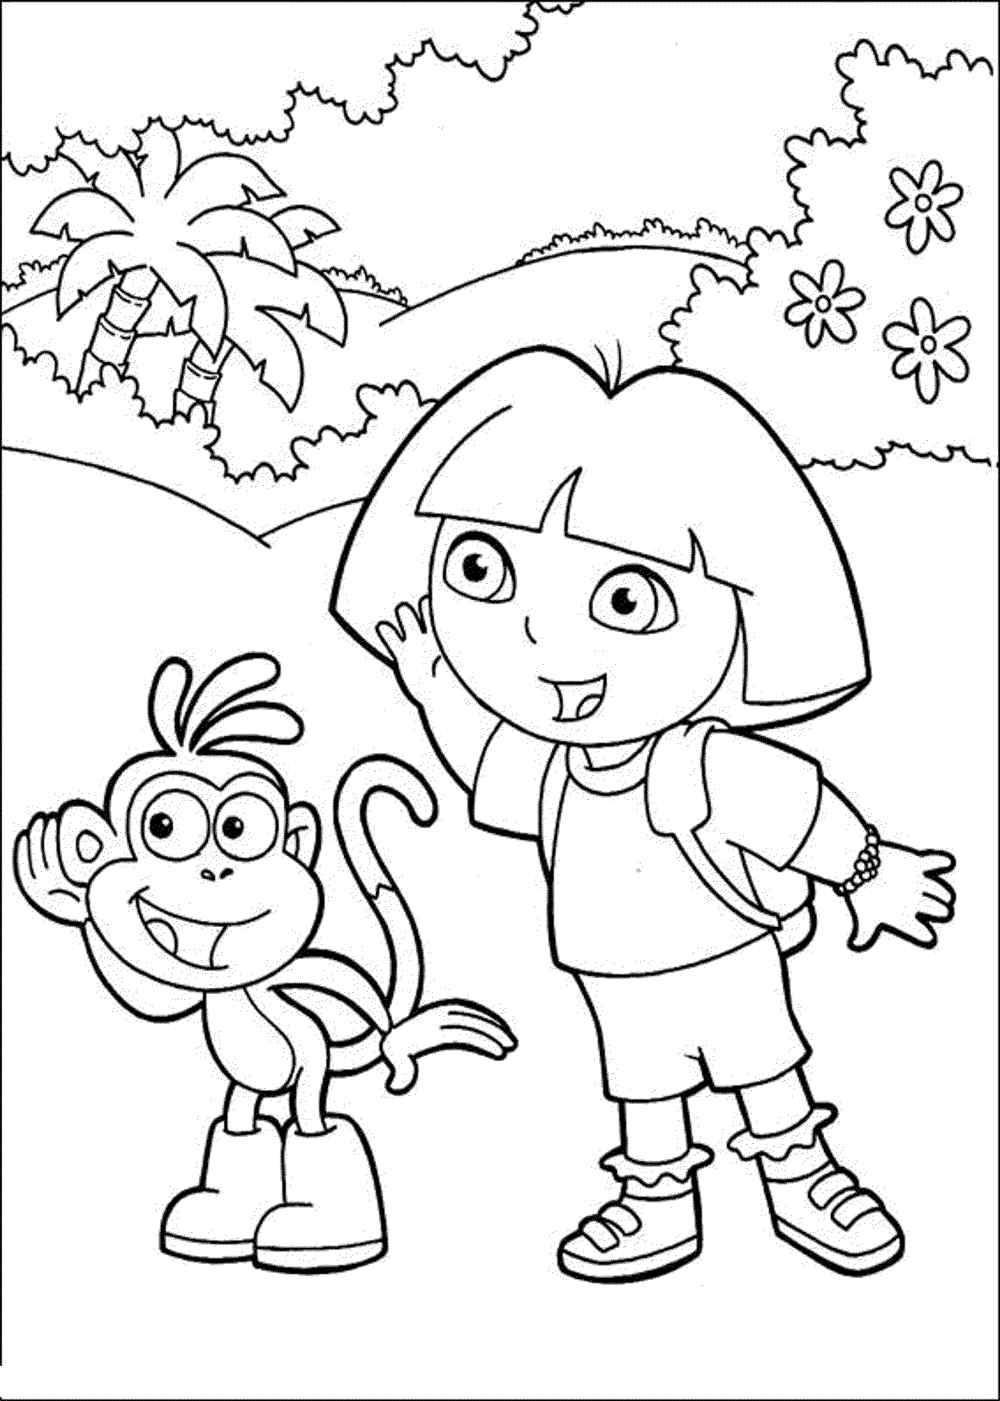 coloring picture of dora dora coloring pages kidsuki picture dora coloring of